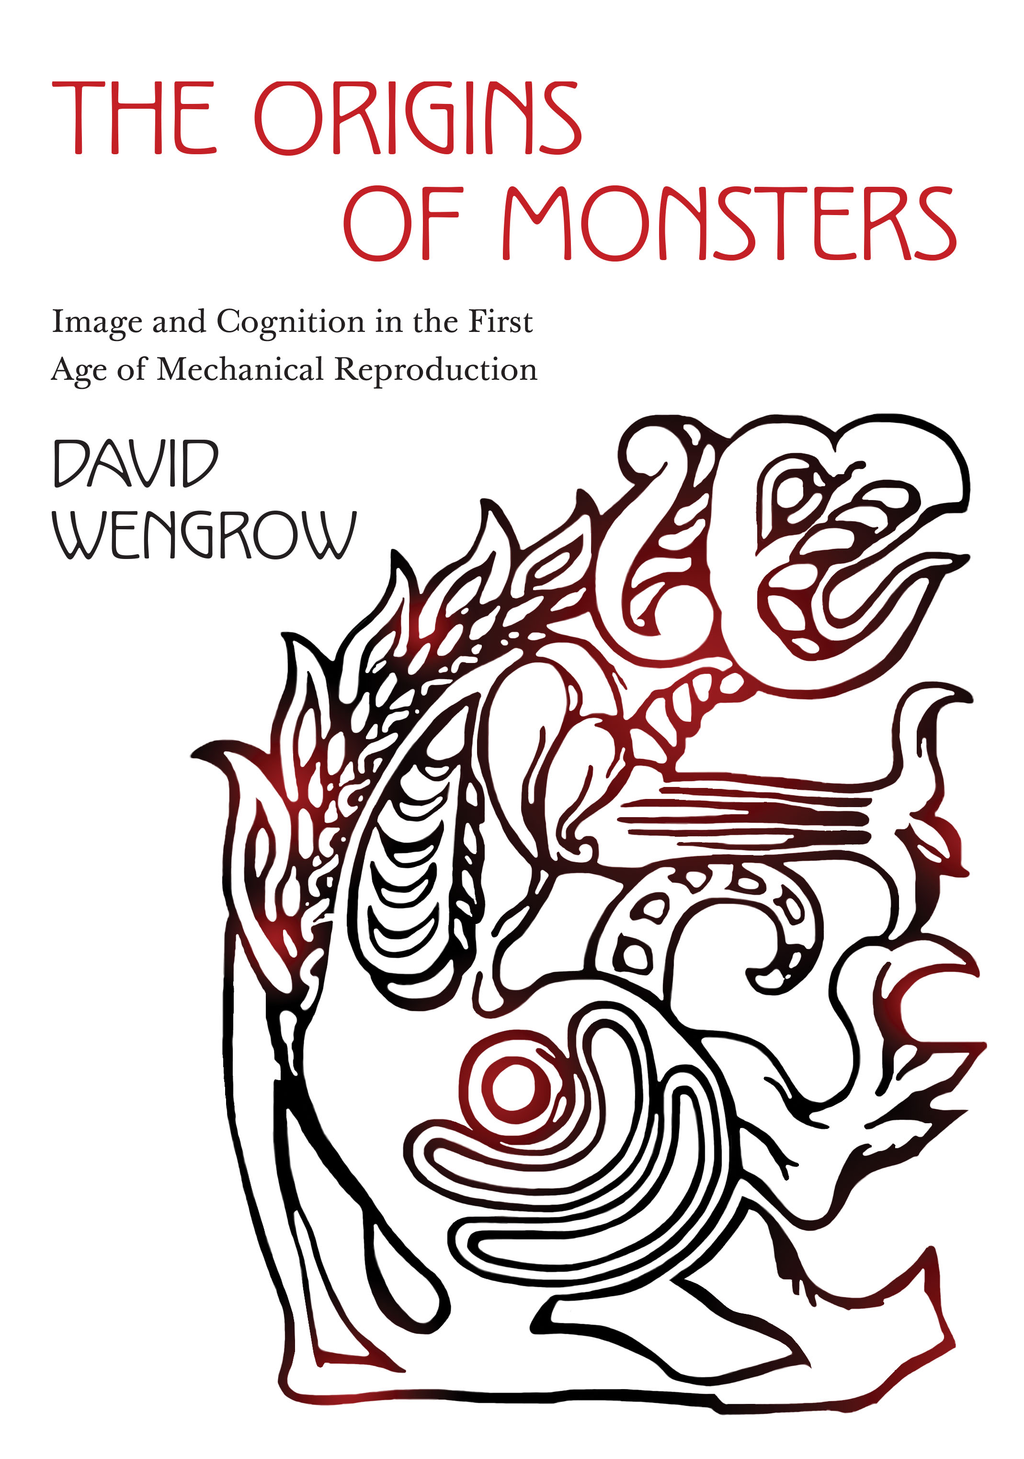 The Origins of Monsters Image and Cognition in the First Age of Mechanical Reproduction